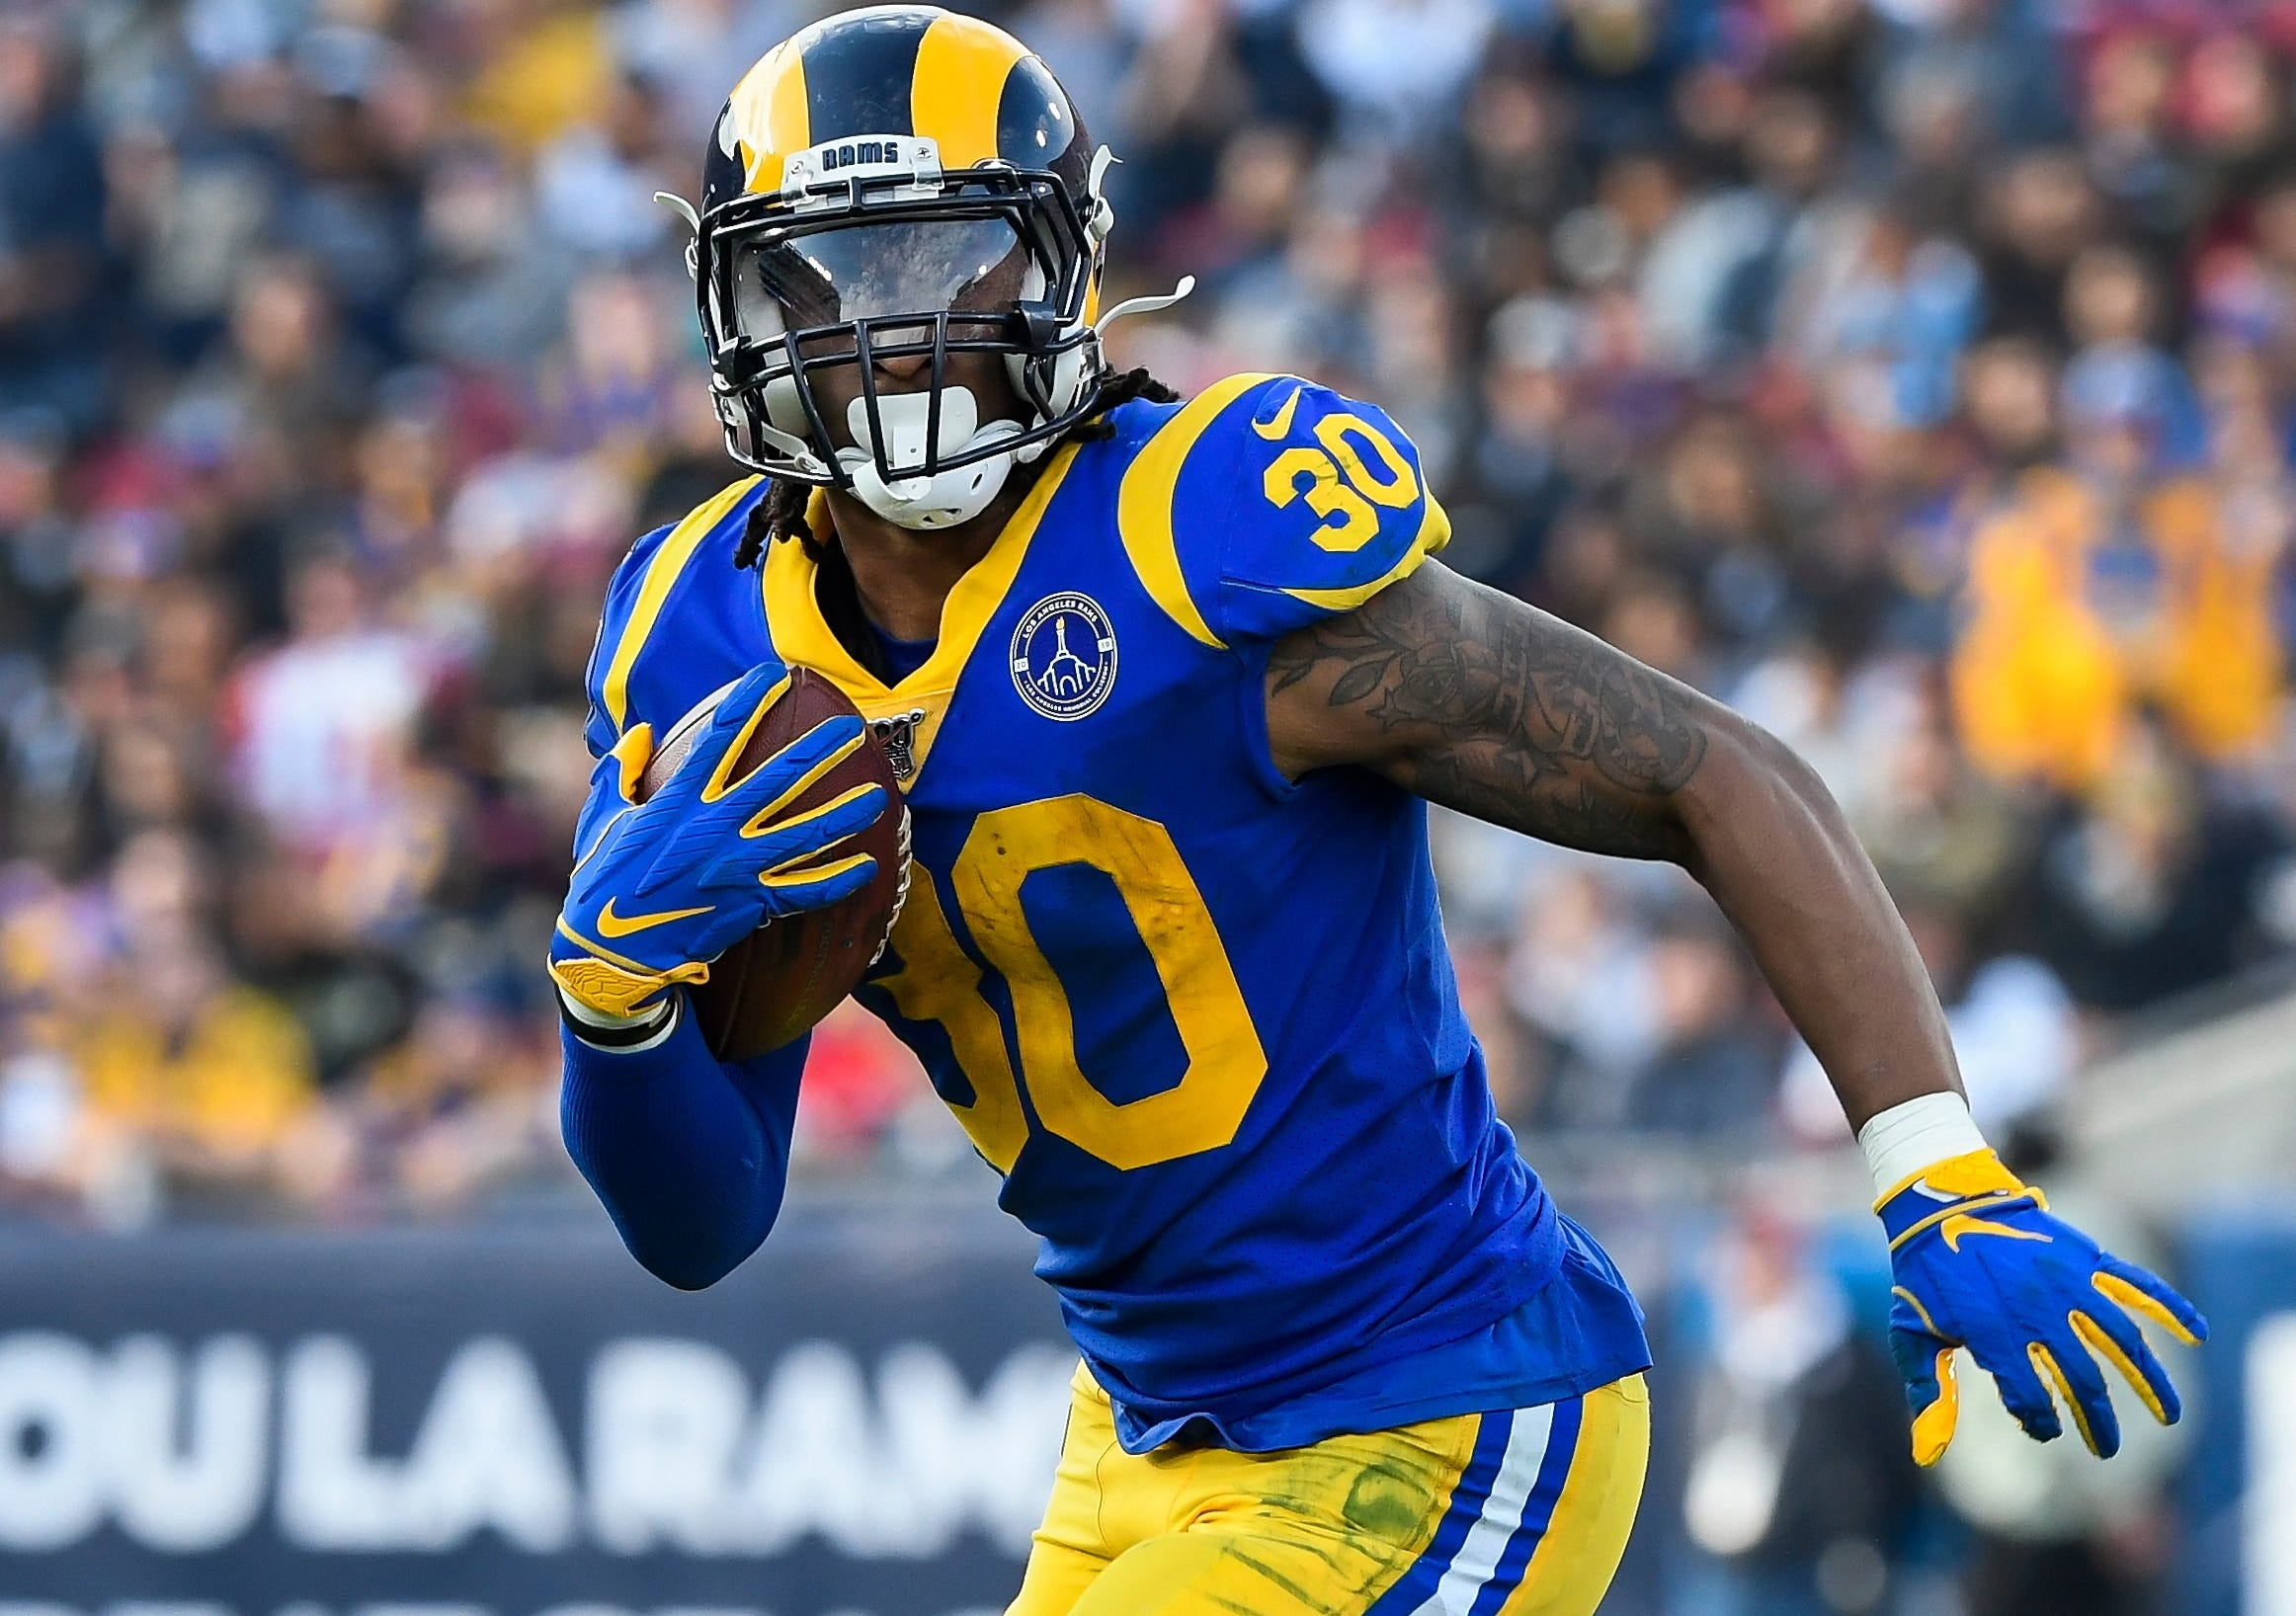 Falcons RB Todd Gurley said Deion Sanders  hatin  on me  over choosing No. 21